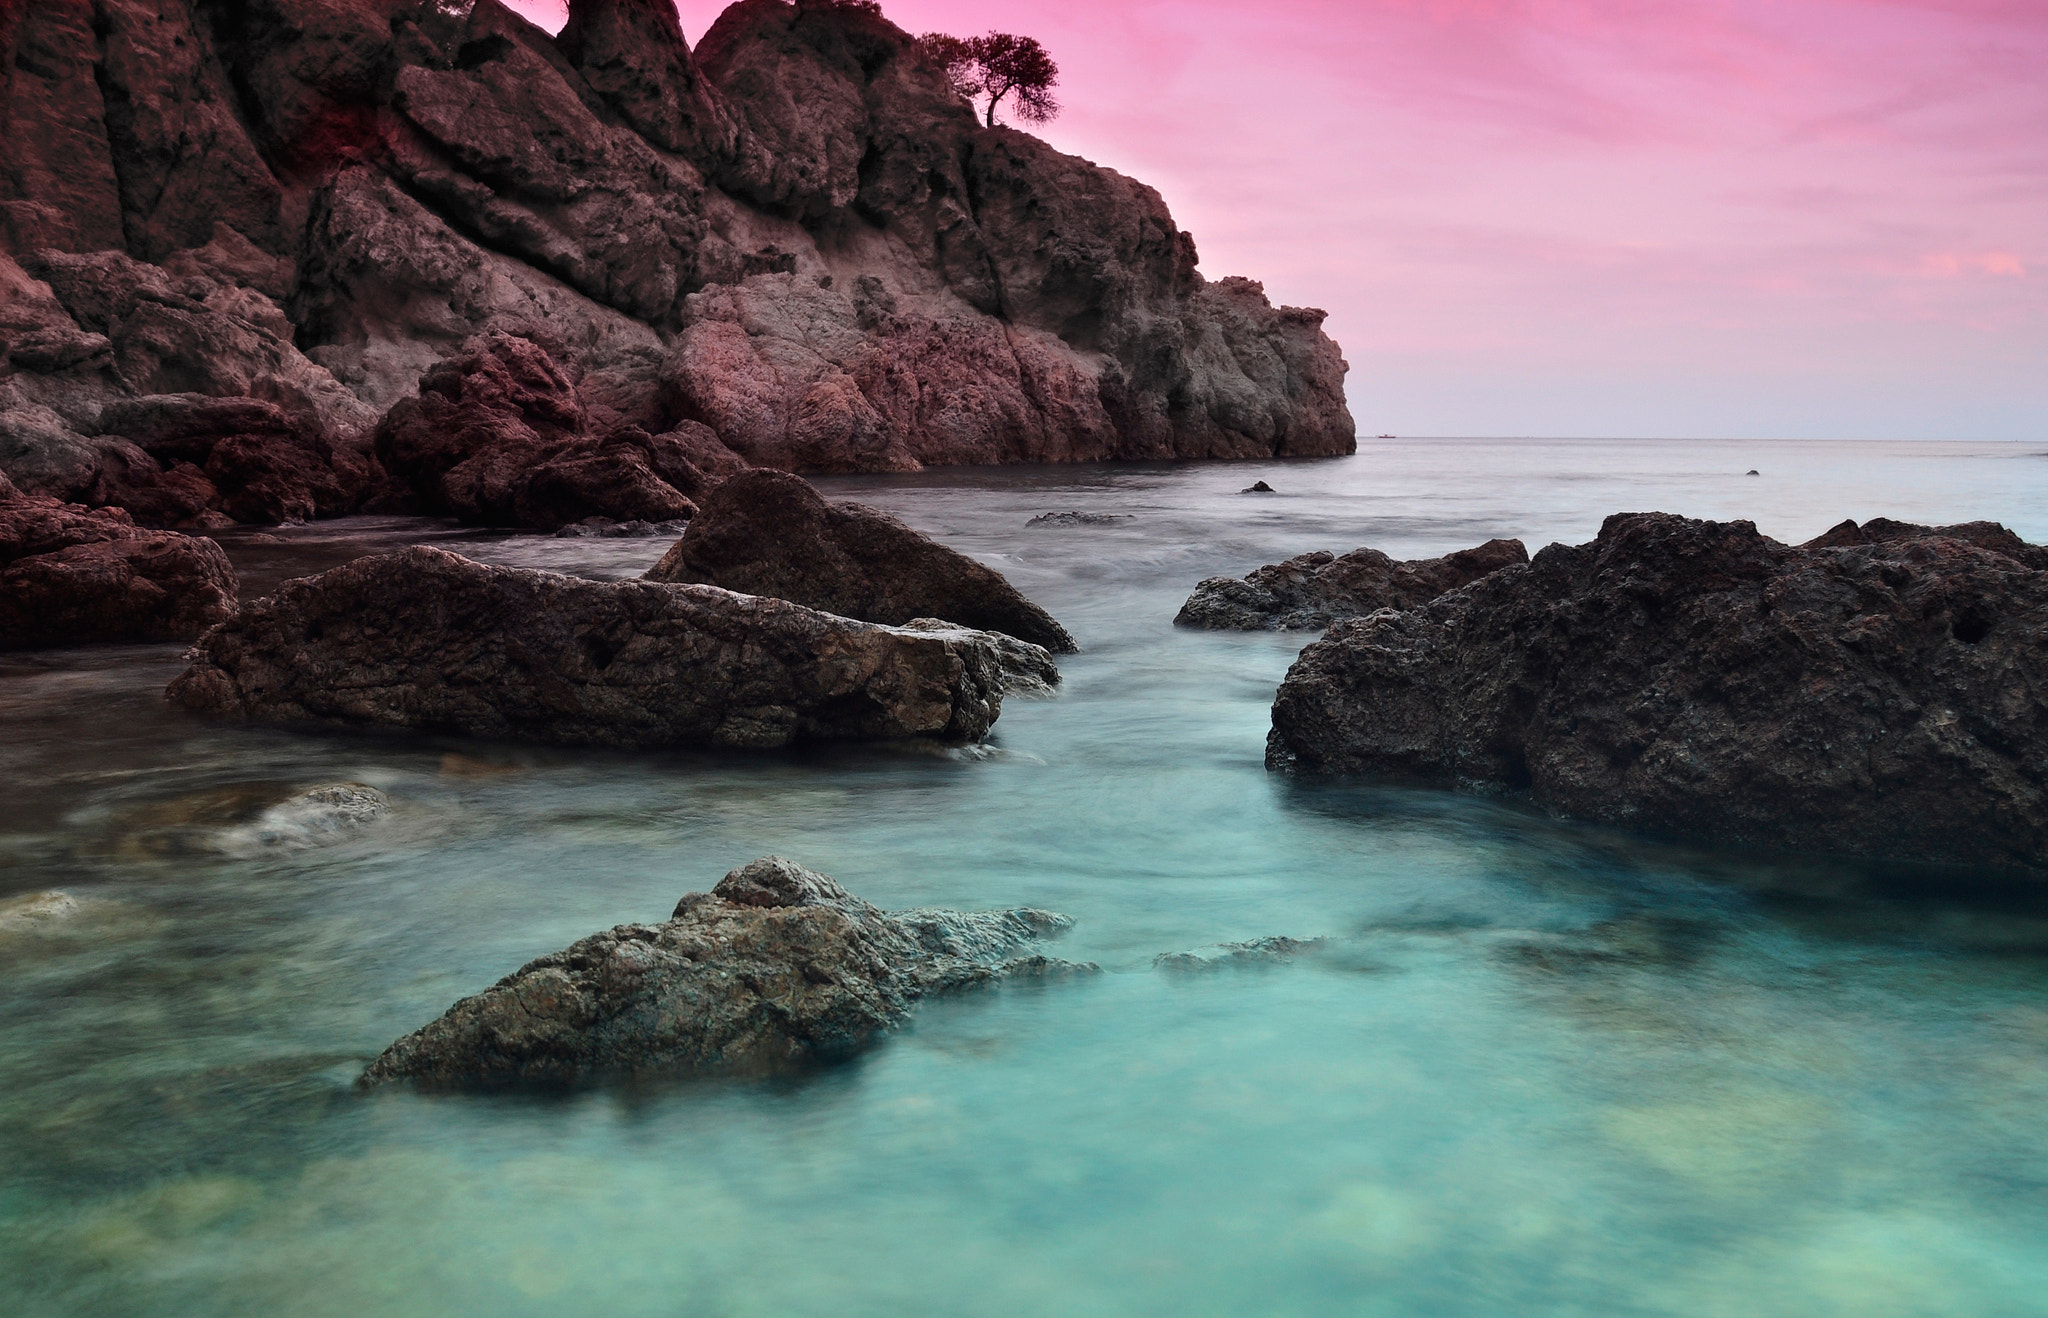 Photograph ~platja del golfet by Michaela Rother on 500px